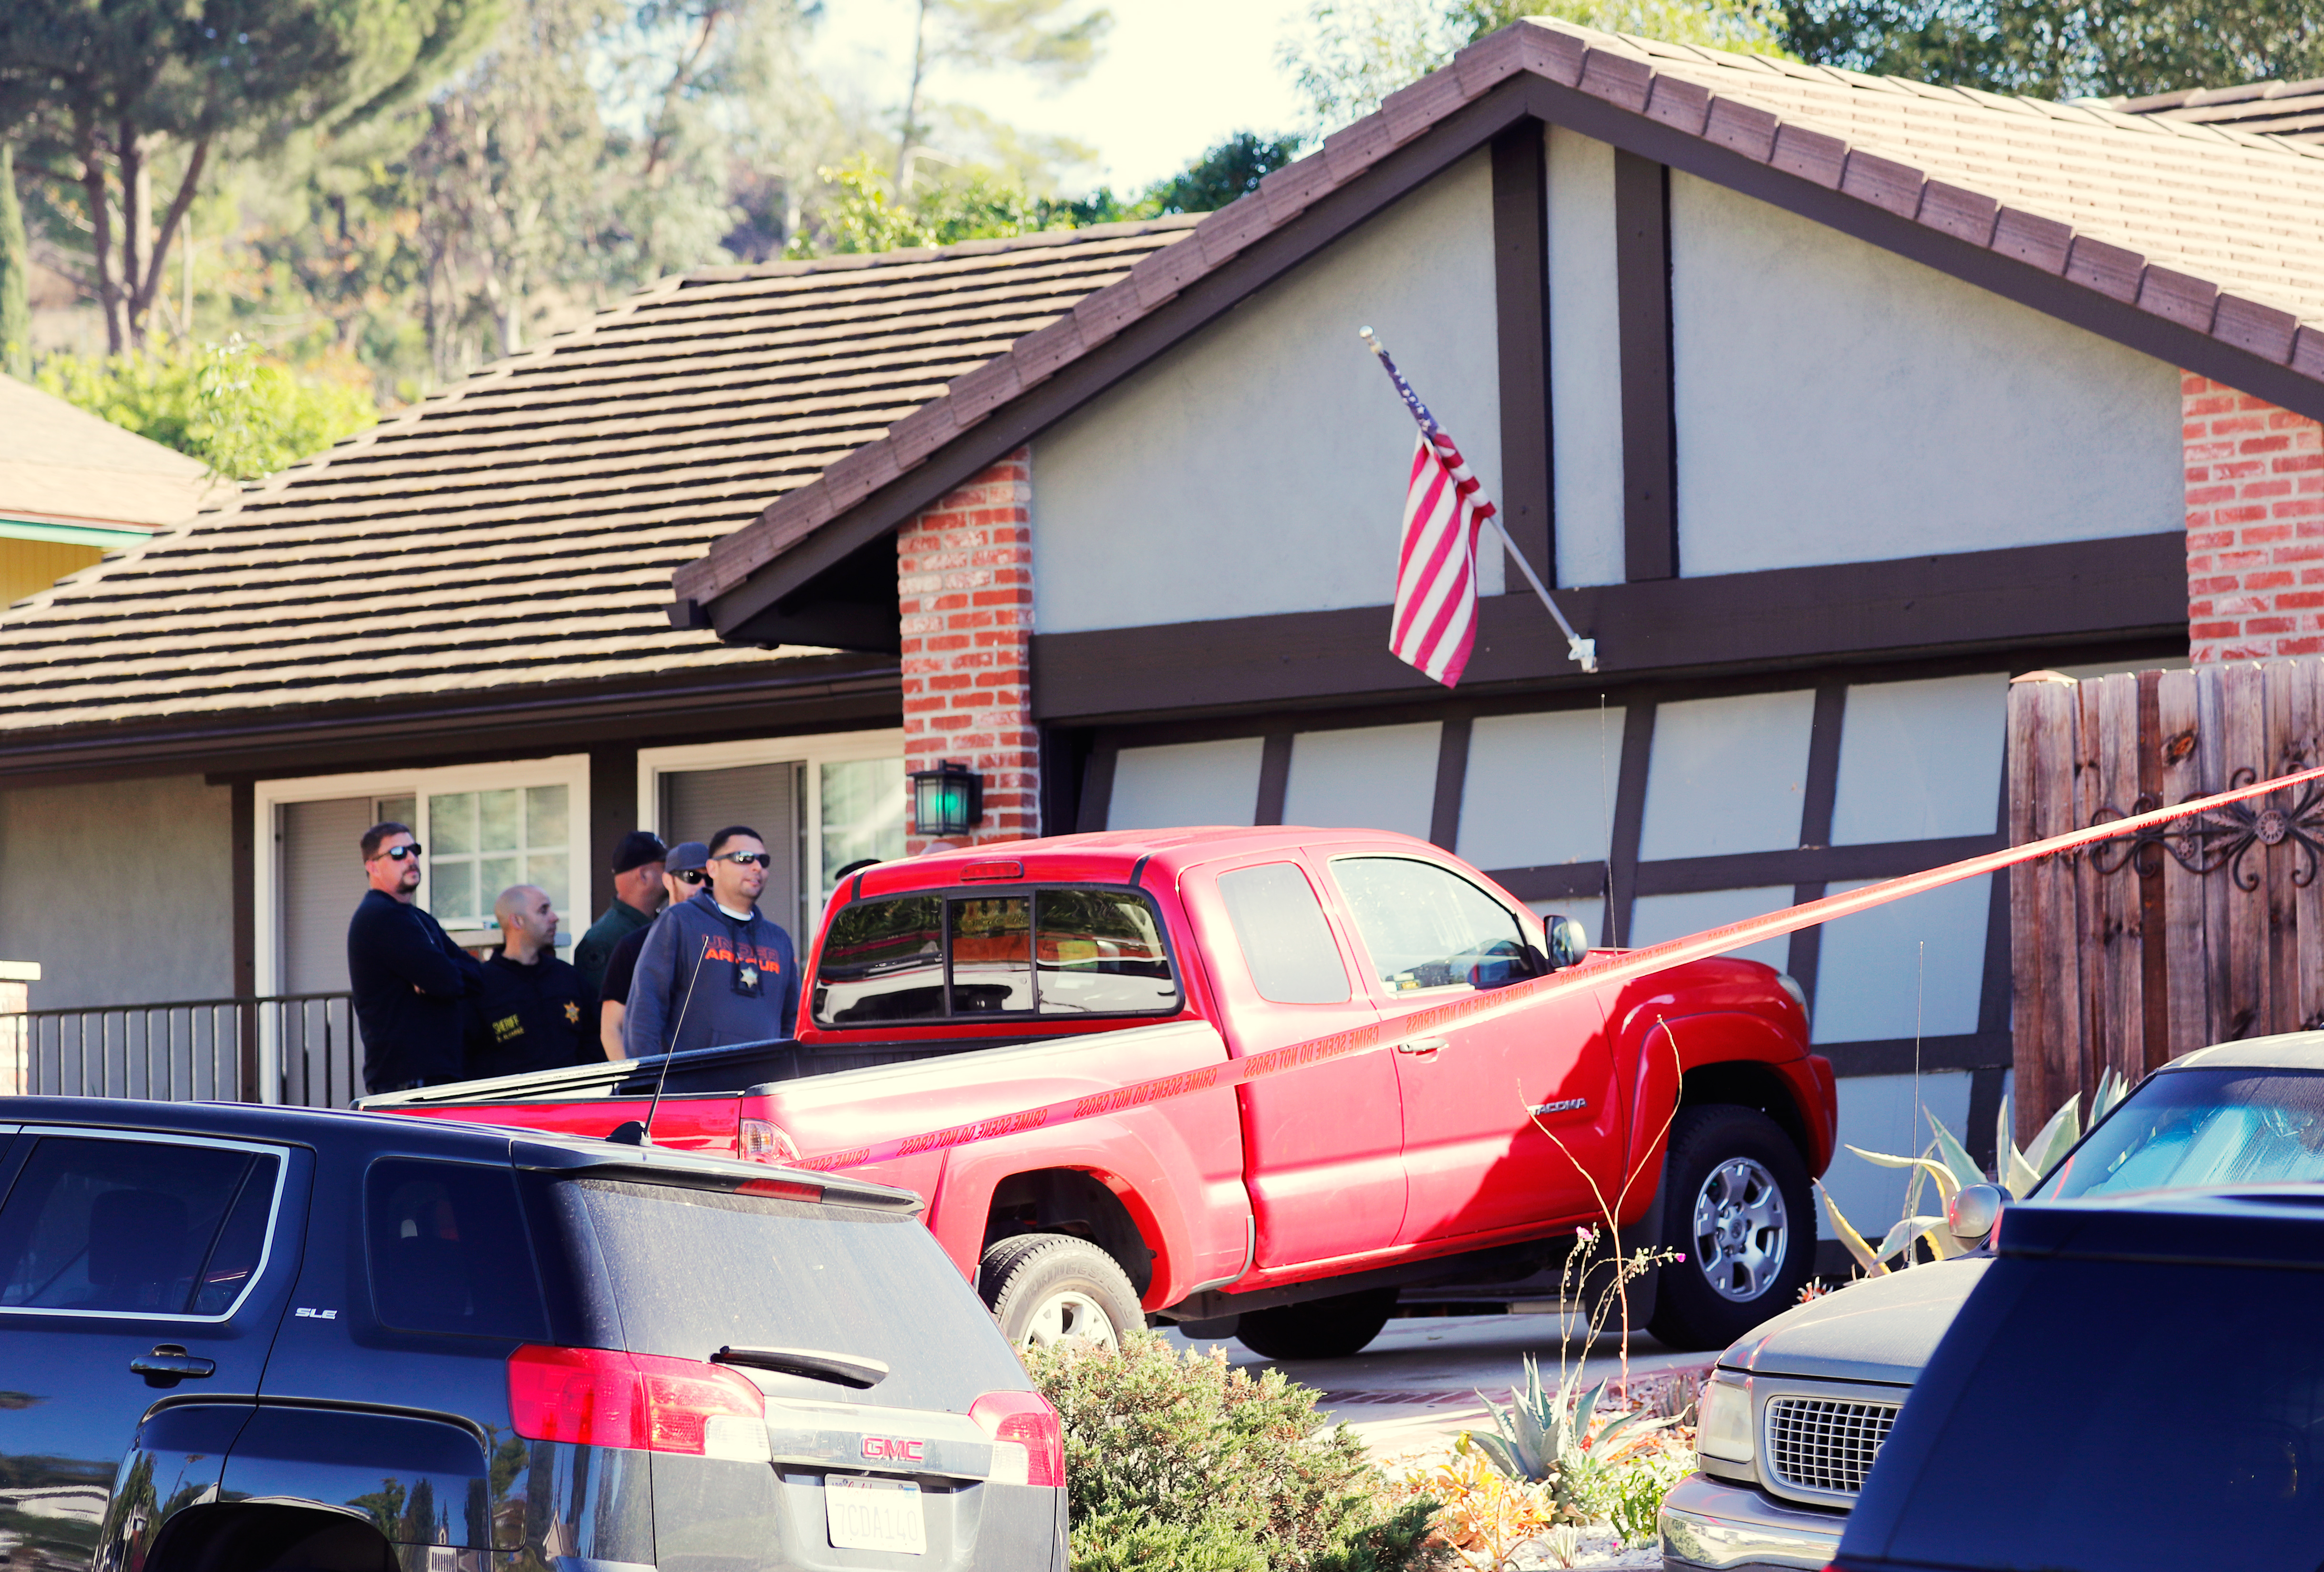 Police and FBI officer wait outside the home of the suspect in a shooting incident at a Thousand Oaks bar, in Newbury Park